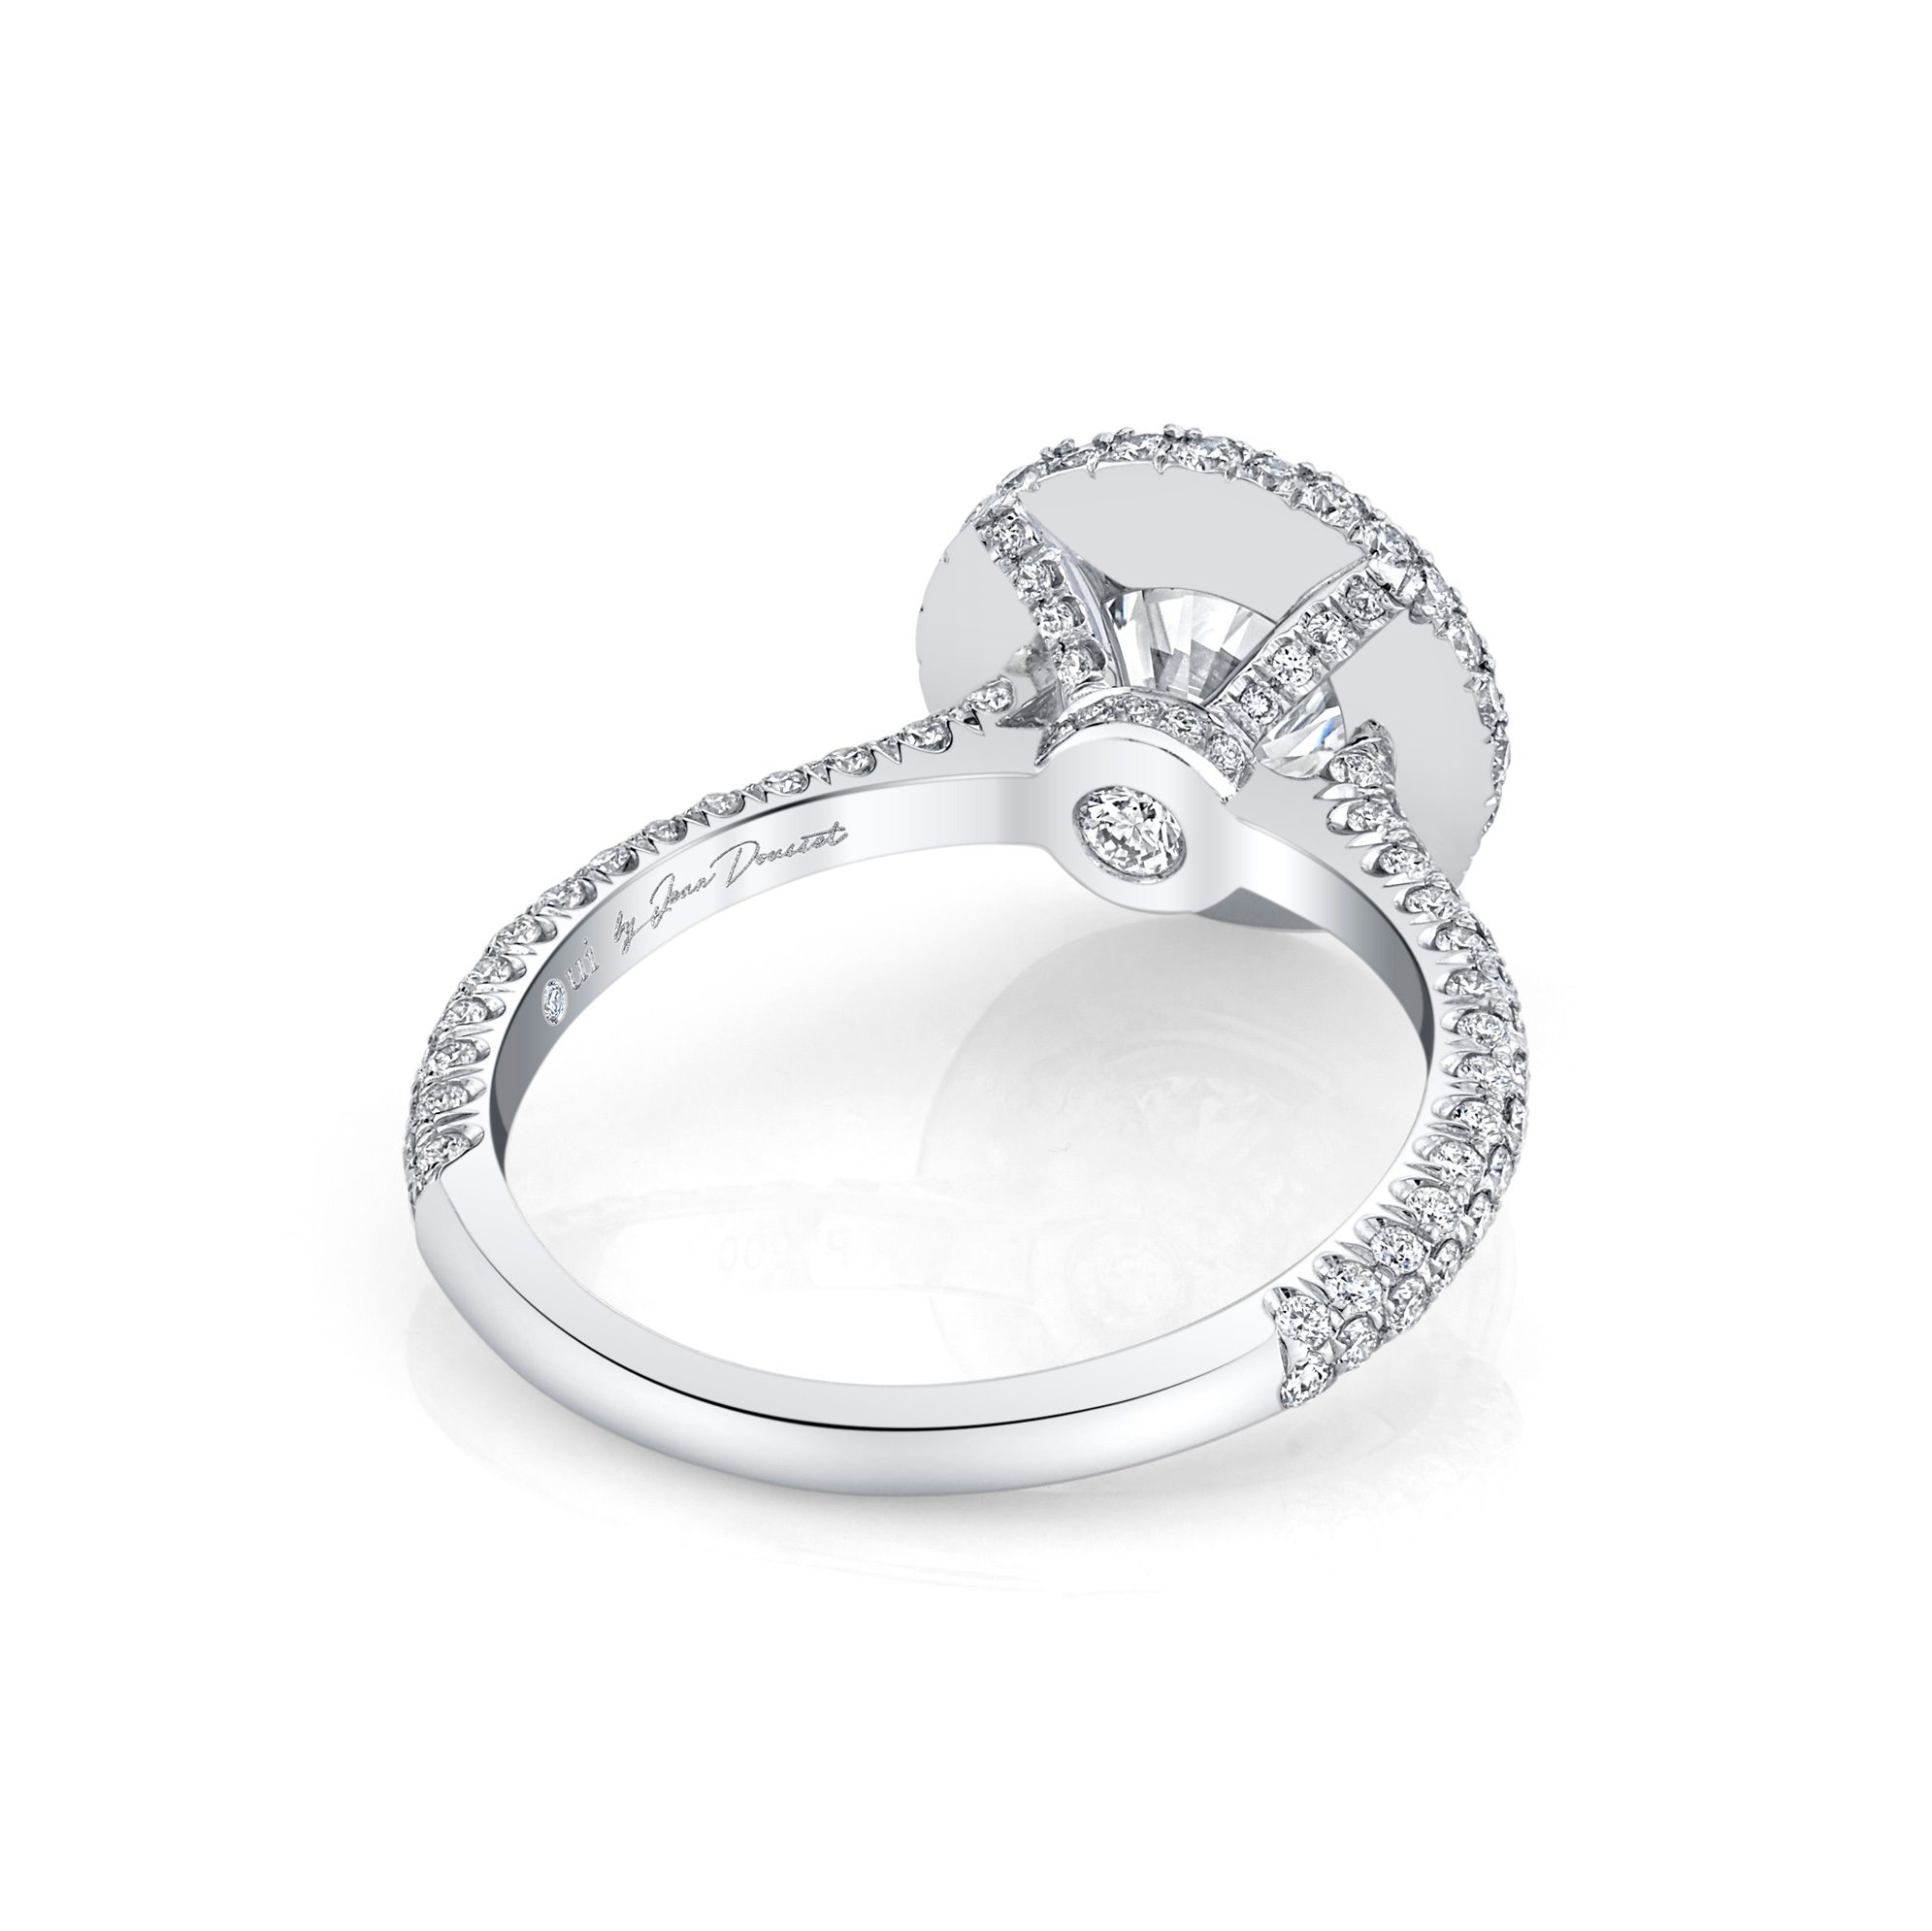 Jacqueline Round Brilliant Seamless Halo® Engagement Ring with diamond pavé in 18k White Gold Back View by Oui by Jean Dousset